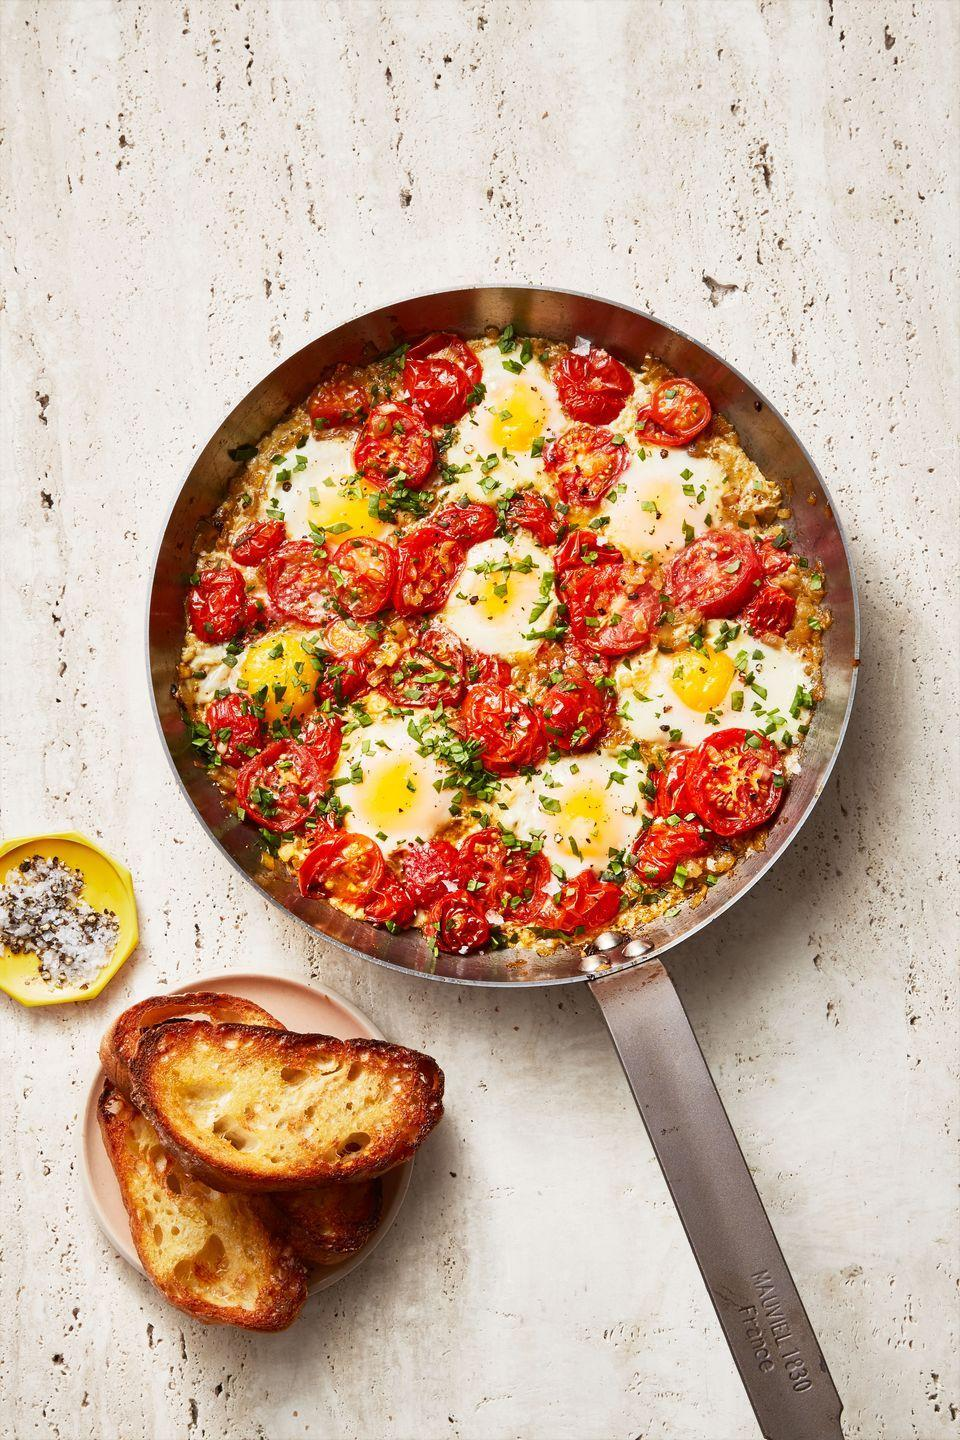 """<p>Tomatoes cooked with spices and onions until they're melt in your mouth, then topped with eggs and baked, make this comfort food for any time of day. Serve with toasts or pita for sopping up every last bit of the umami-packed sauce.</p><p><em><a href=""""https://www.goodhousekeeping.com/food-recipes/a34908201/easy-shakshuka-recipe/"""" rel=""""nofollow noopener"""" target=""""_blank"""" data-ylk=""""slk:Get the recipe for Shaksuka »"""" class=""""link rapid-noclick-resp"""">Get the recipe for Shaksuka »</a></em></p>"""